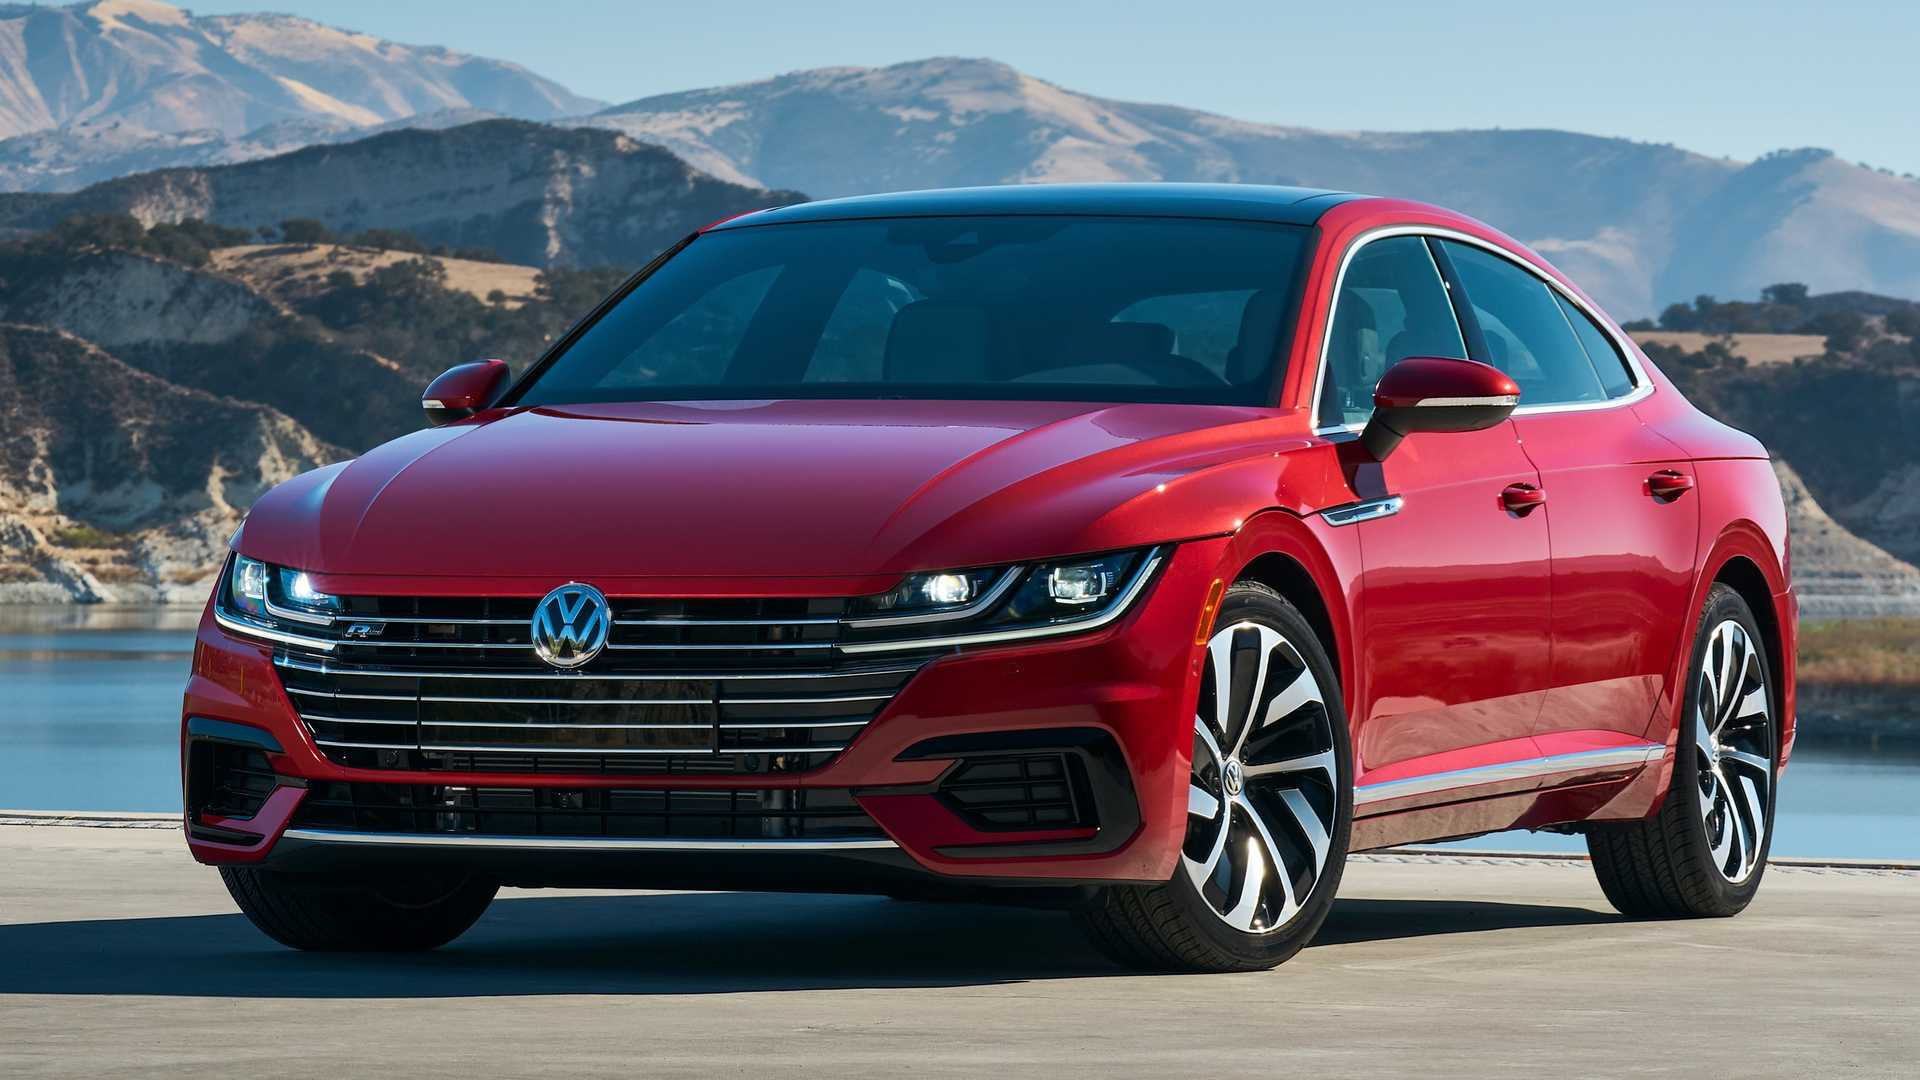 2019 Volkswagen Arteon 4Motion First Drive: Arty In The U.S.A.